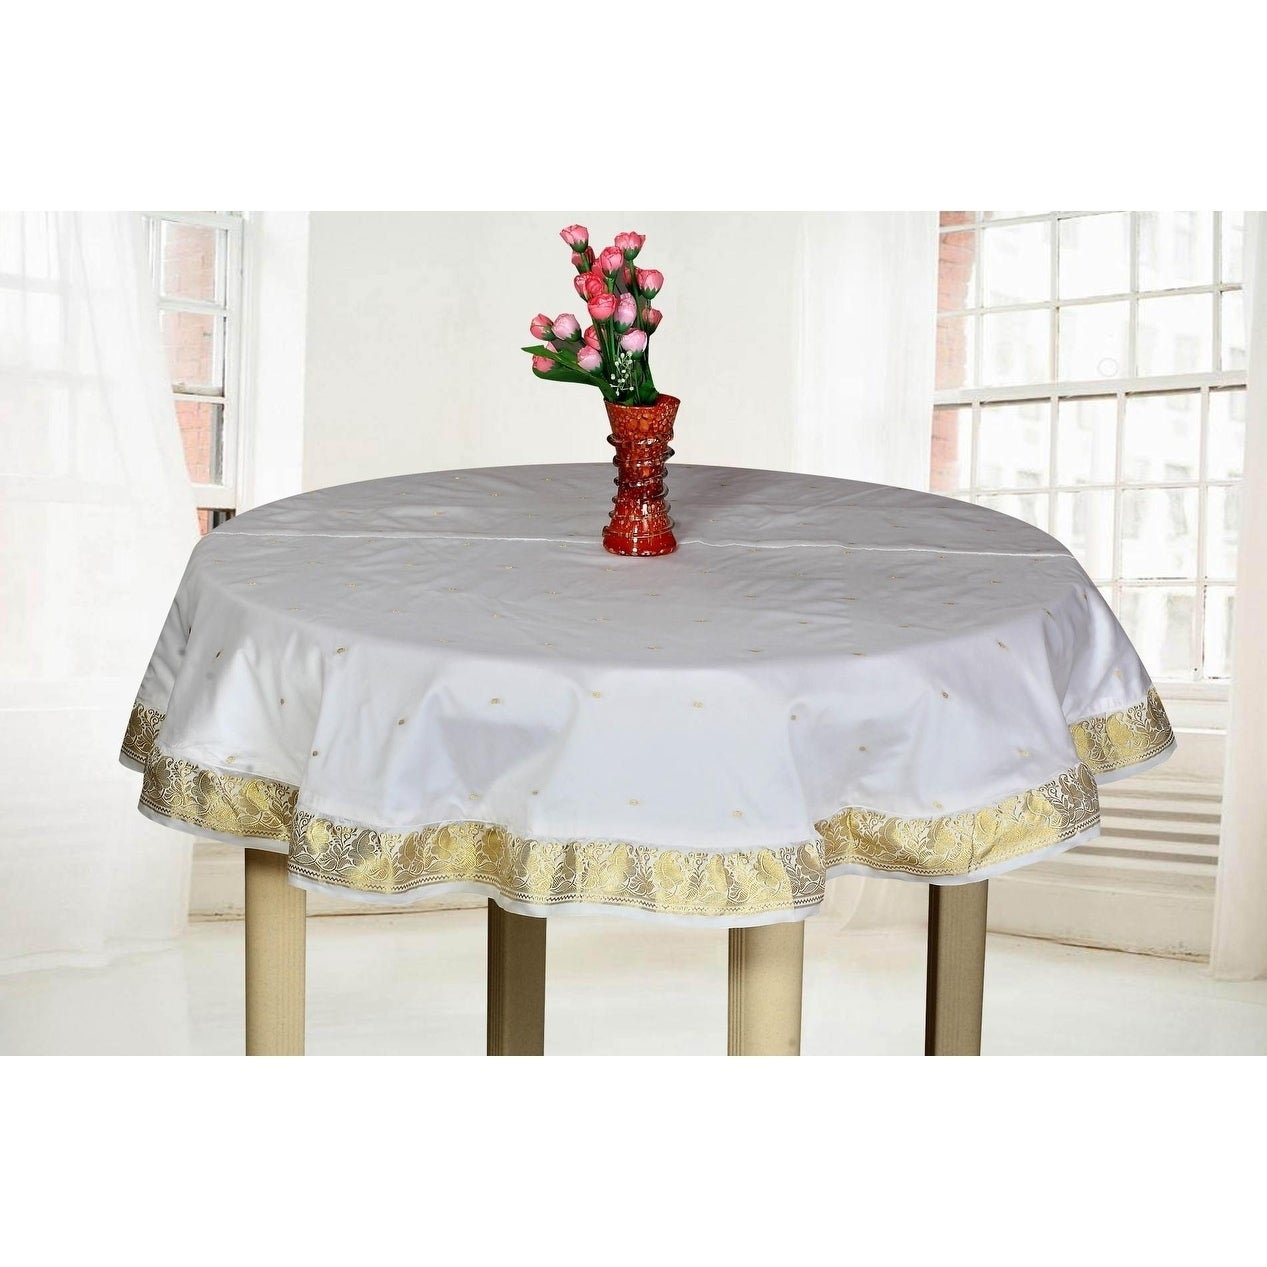 White Gold - Handmade Sari Tablecloth (India) - Round (60 Inches (152 cms) - Round)